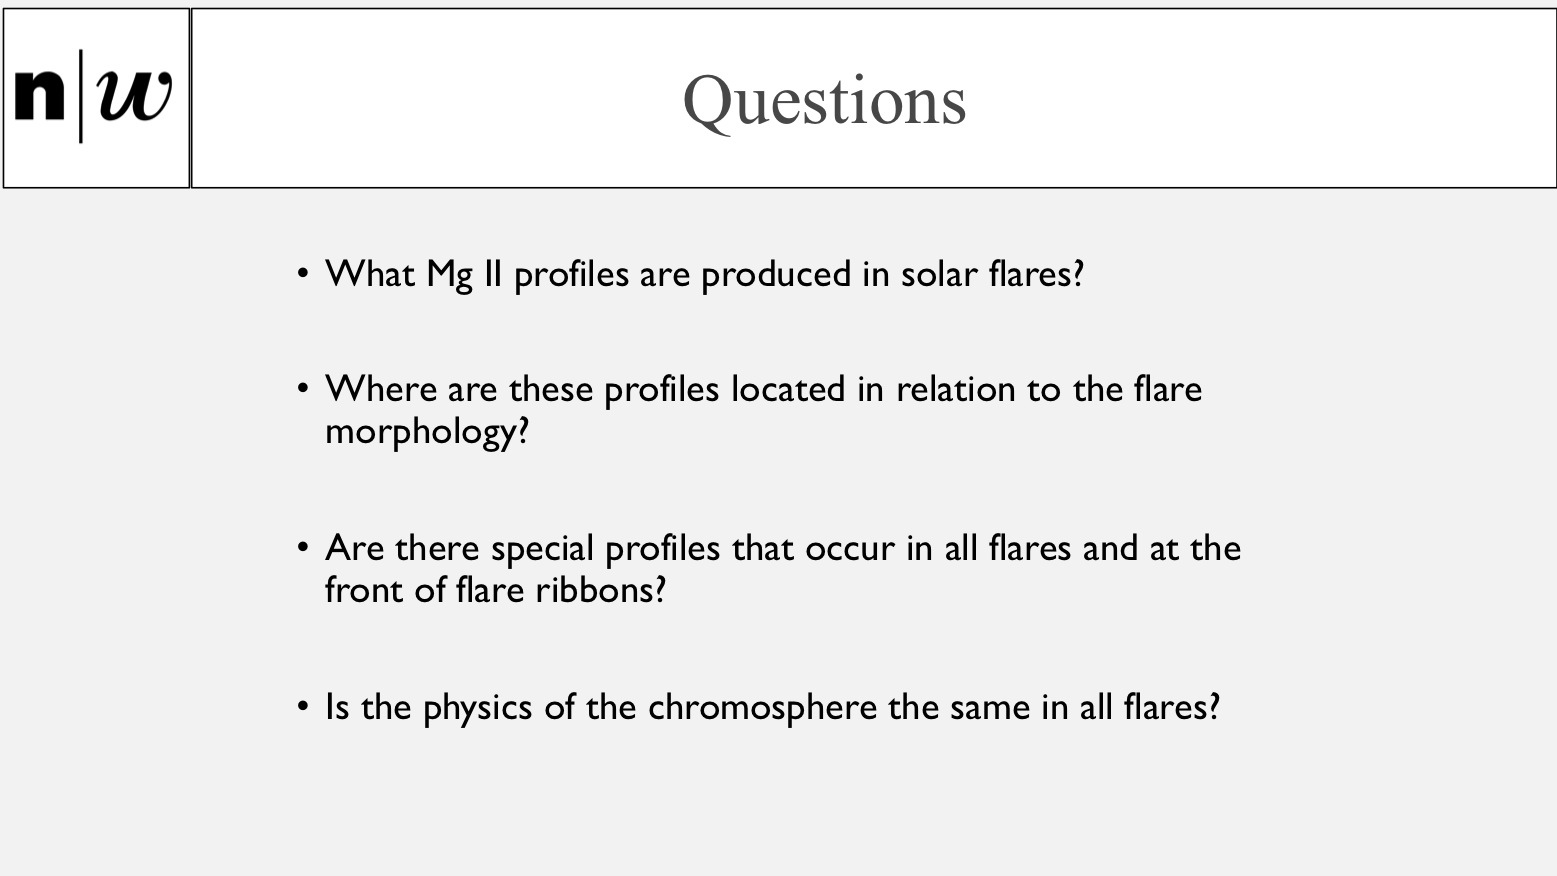 Questions related to Mg II profiles in solar flares